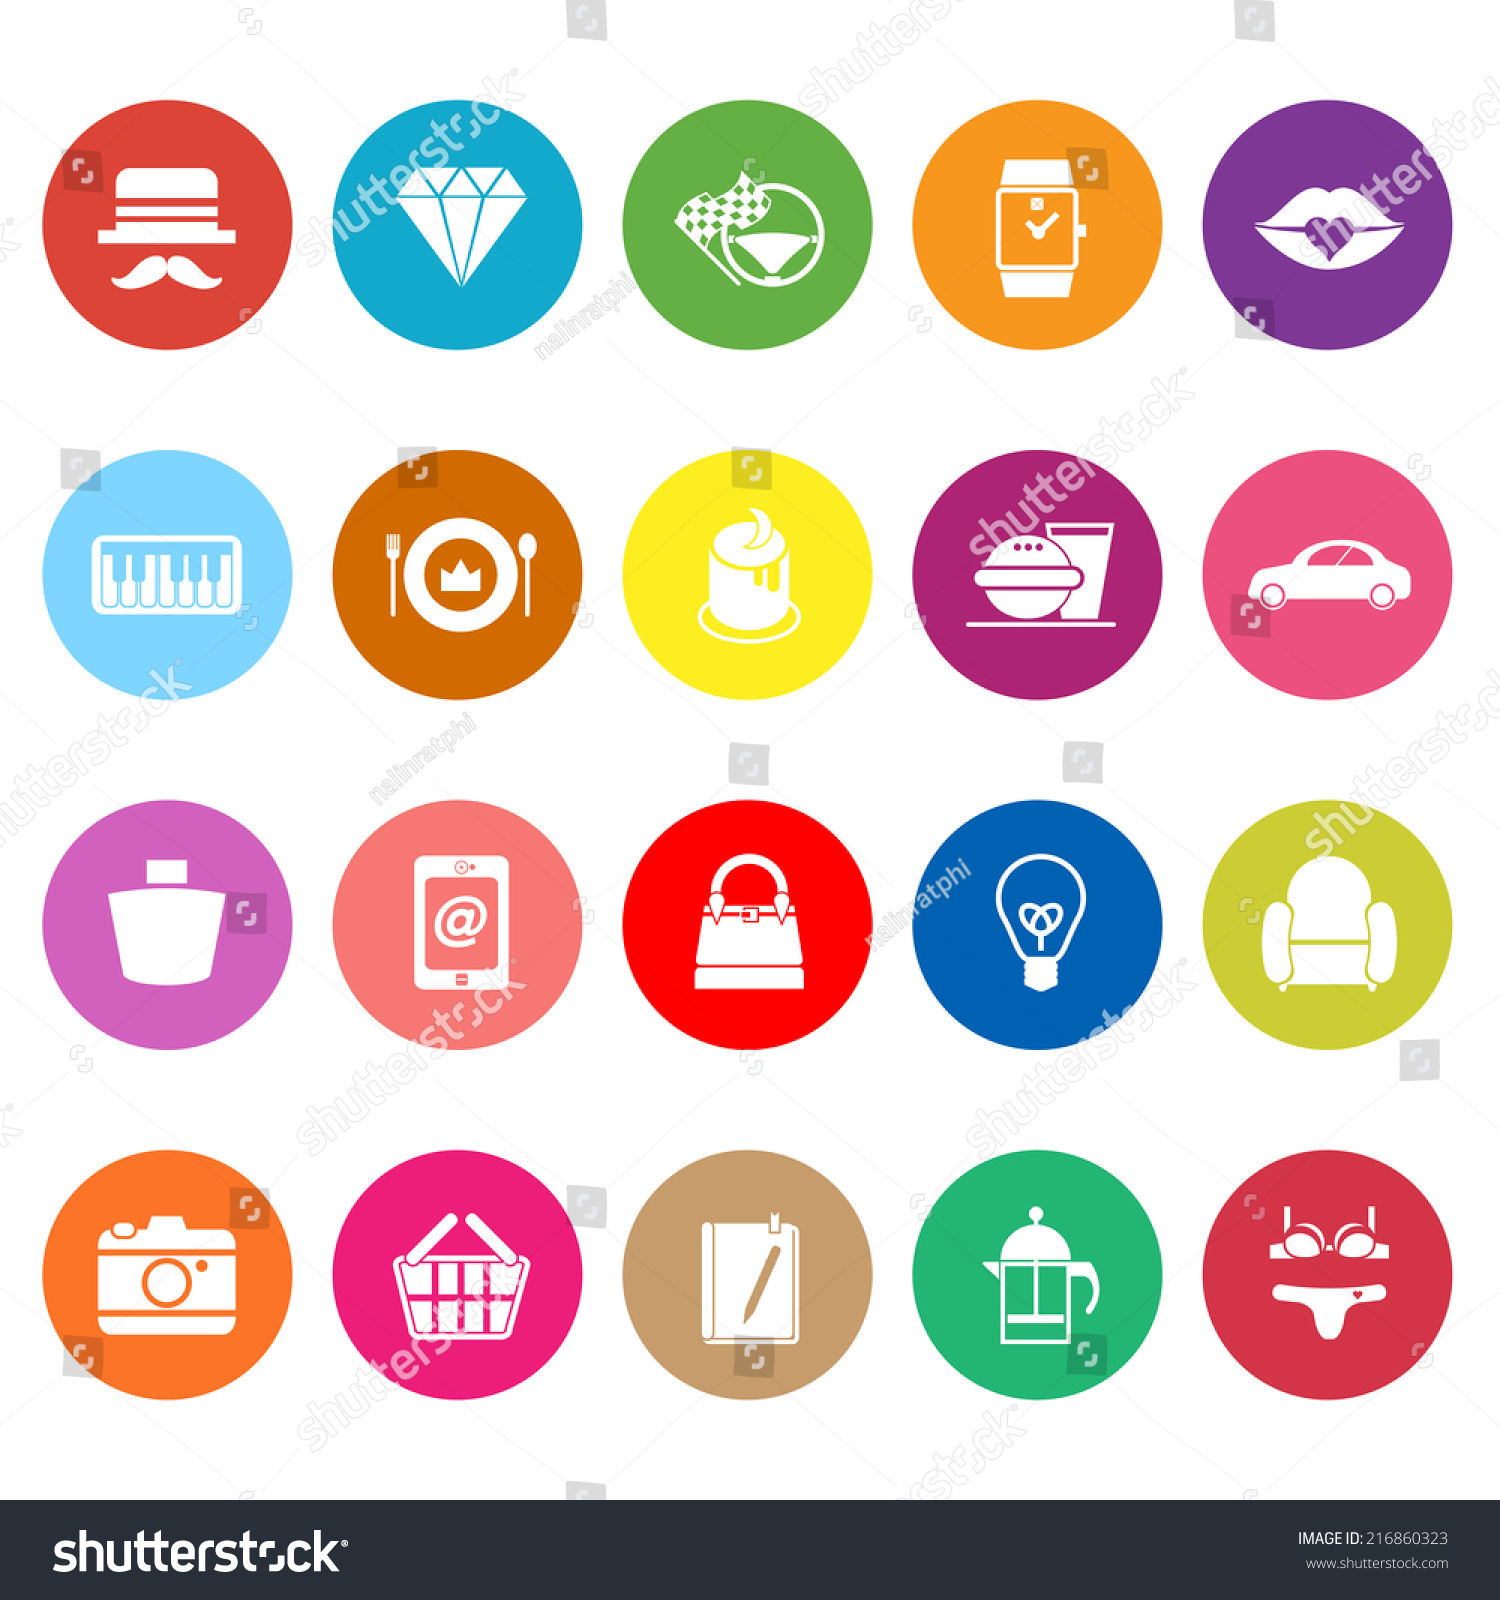 Department Store Item Category Flat Icons Stock Vector 216860323